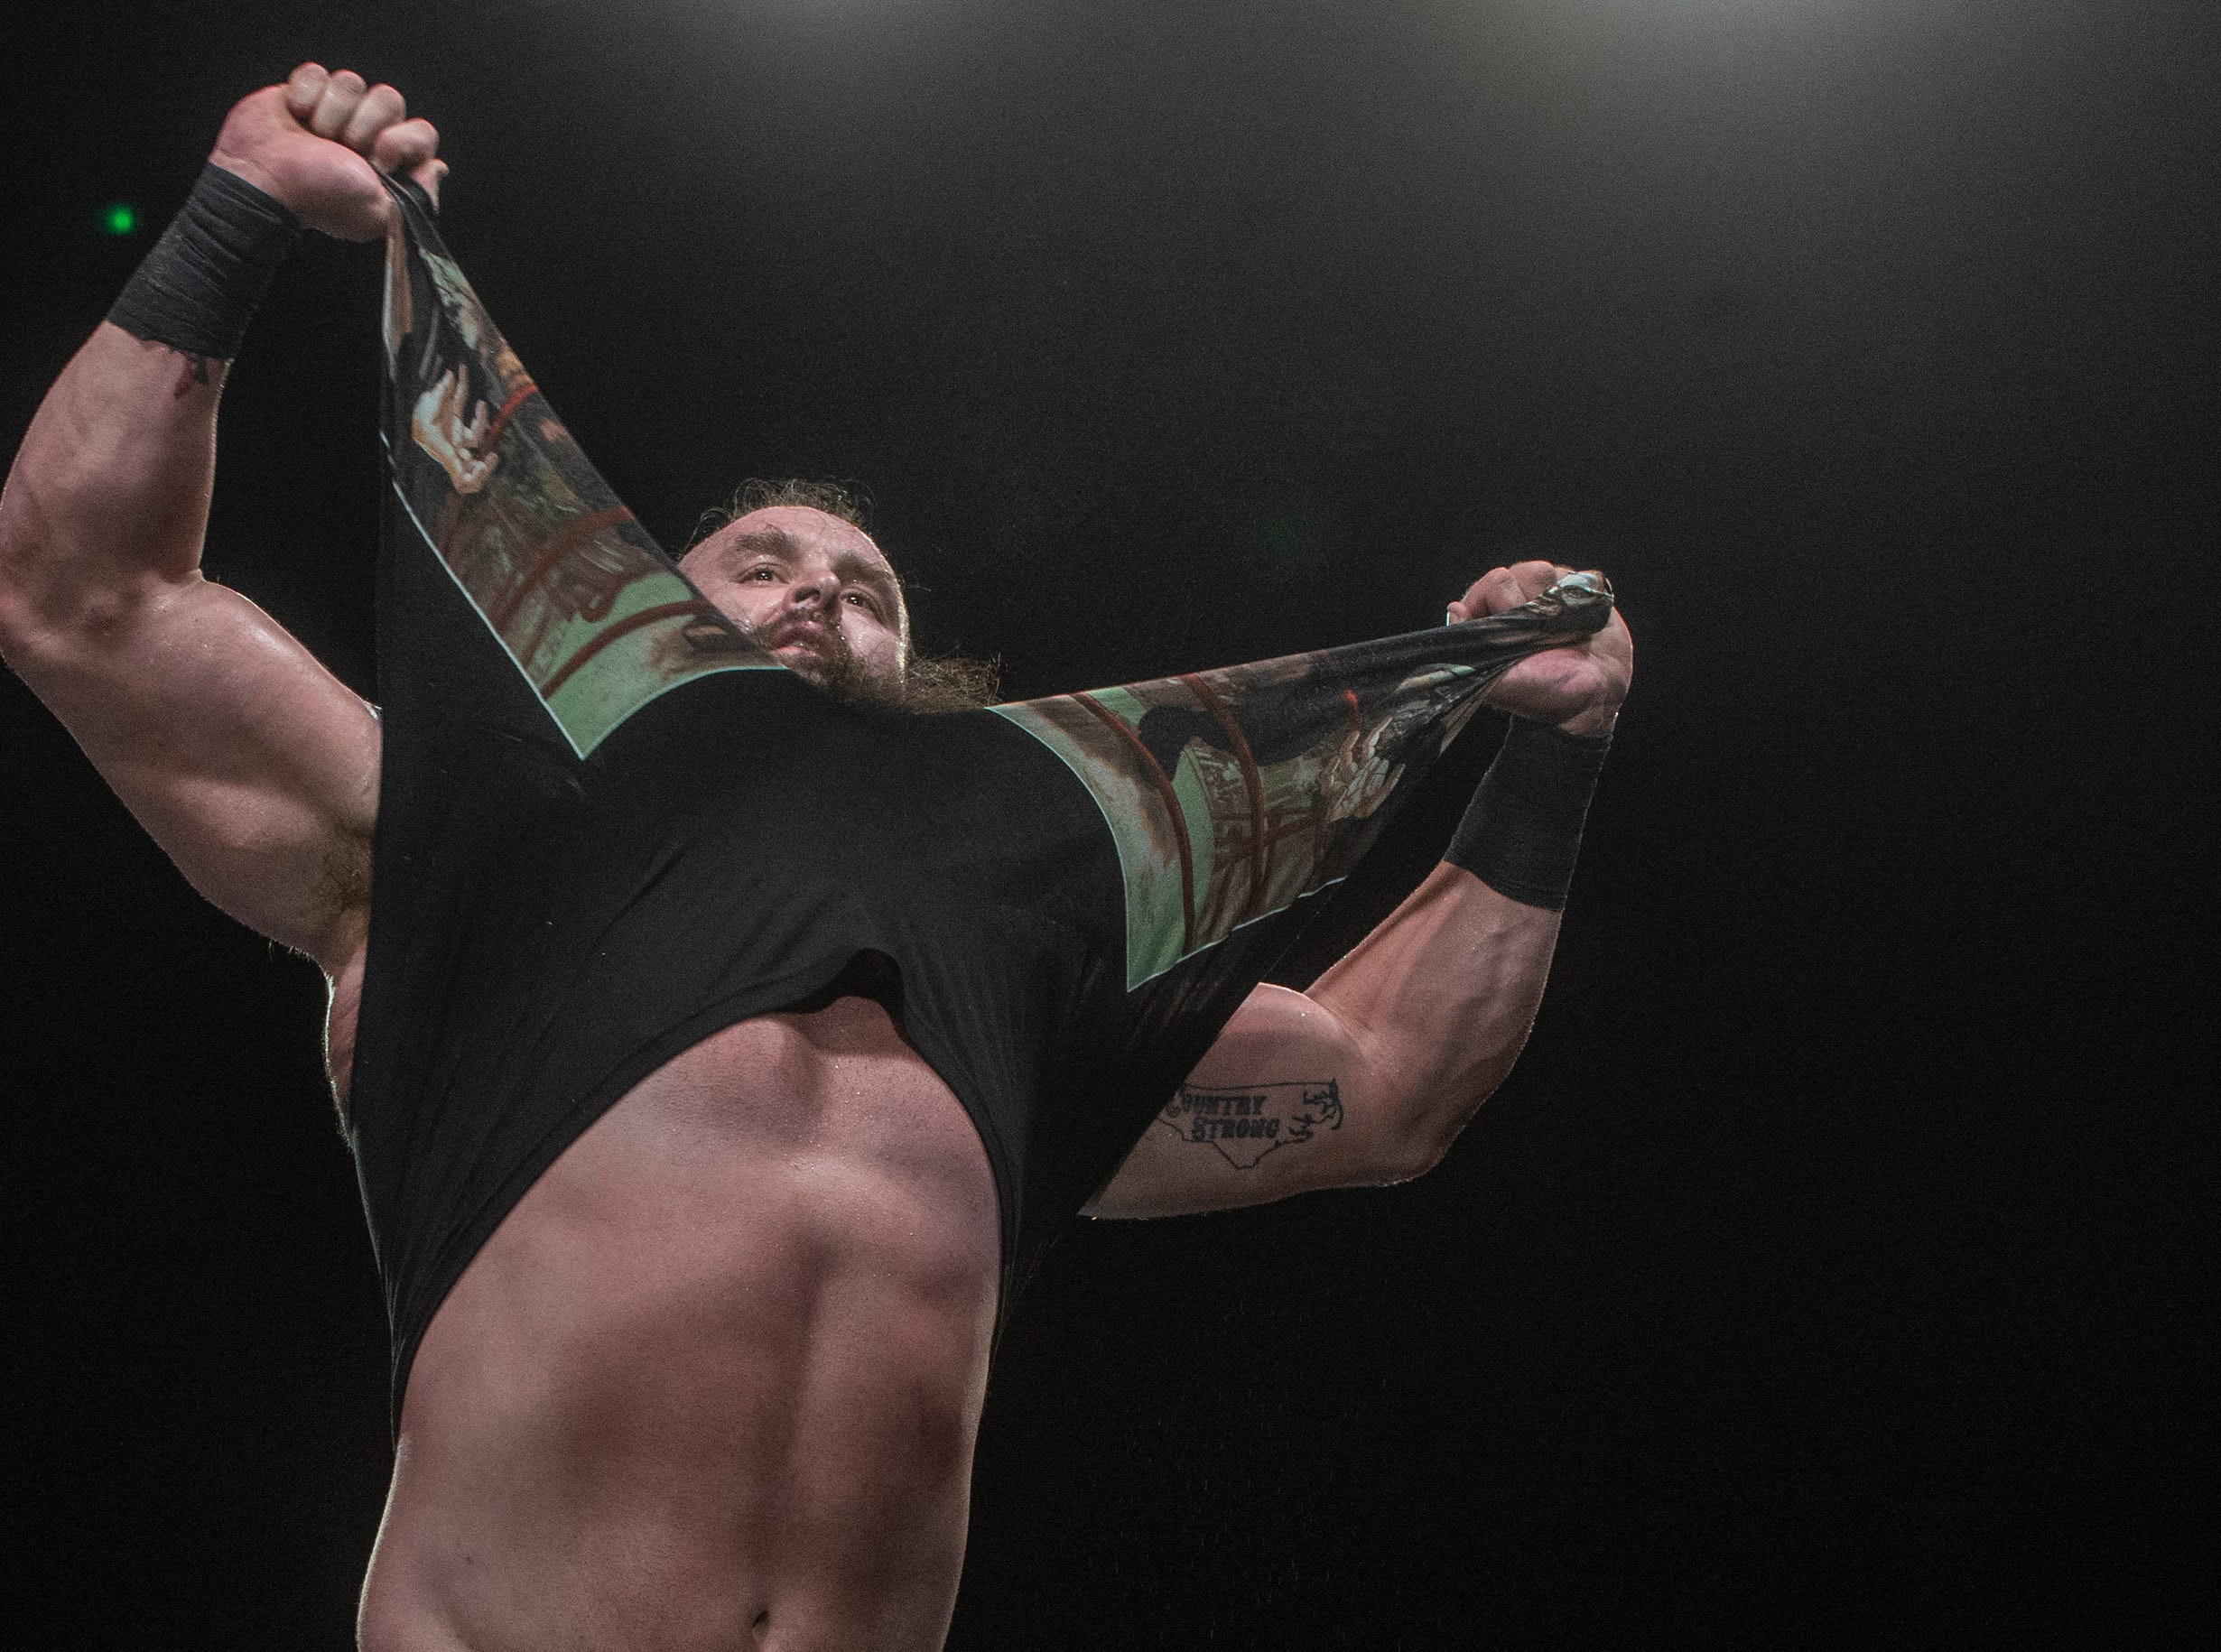 Braun Strowman tears off his shirt and gets the crowd revved up. The main event was a street fight between Baron Corbin and Braun Strowman, with lots of of chairs, sticks and tables. WWE Live Road to Wrestlemania came to Garrett Coliseum in Montgomery on Sunday, Feb. 24, 2019.